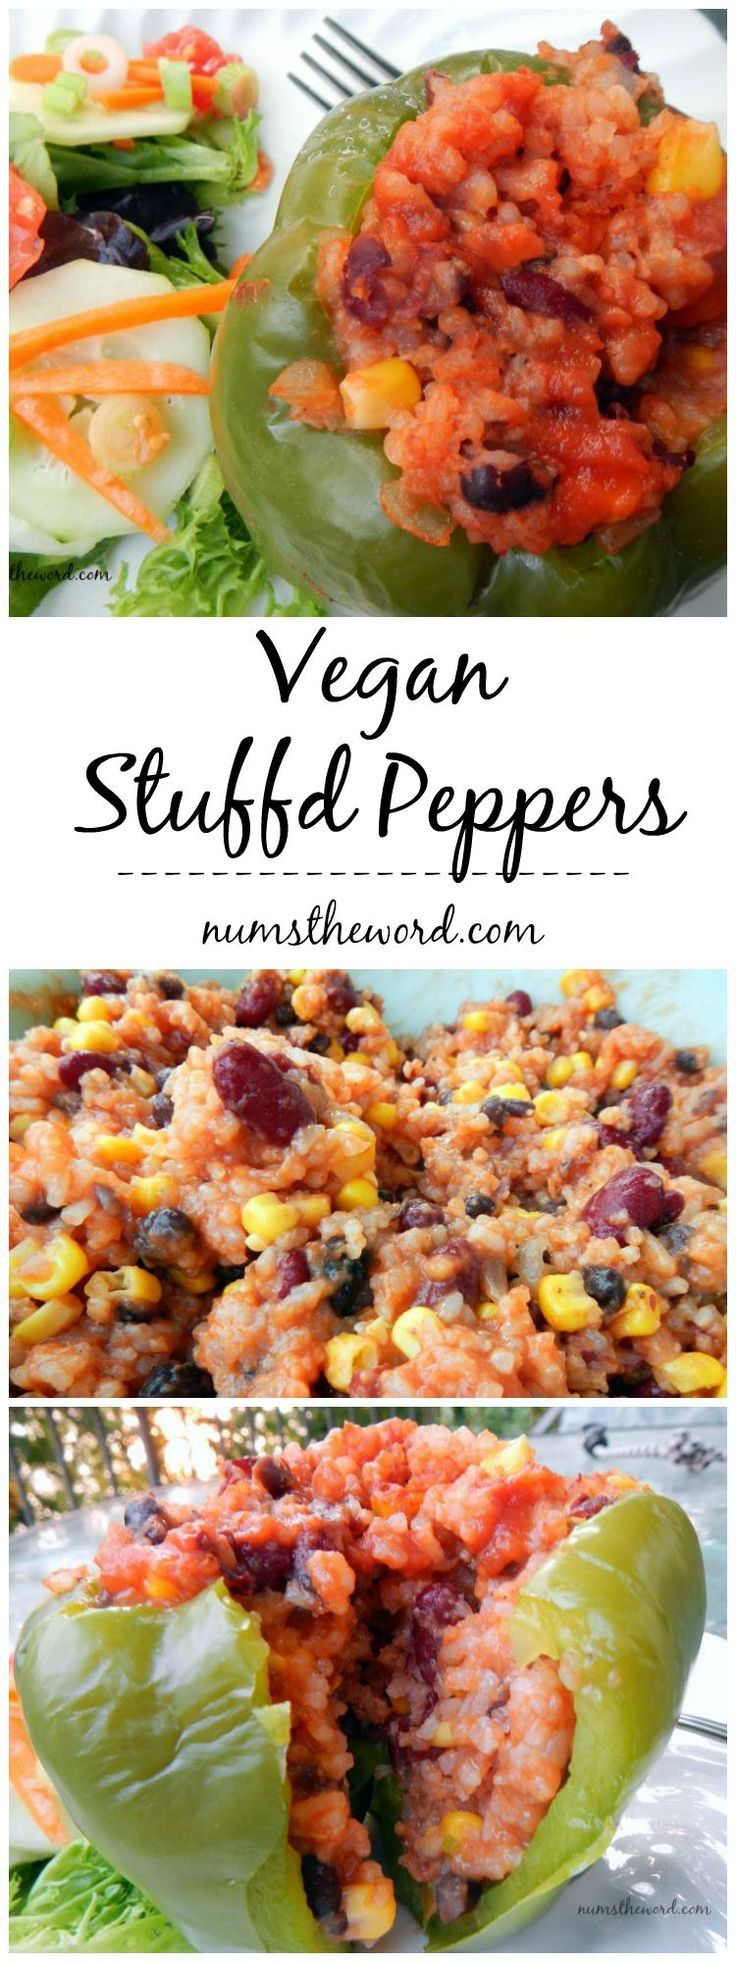 These Vegan Stuffed Peppers are easy to make and taste great! The filling can be used in peppers or as a burrito or taco filling. Easy and delicious!  Vegan & Vegetarian Approved!